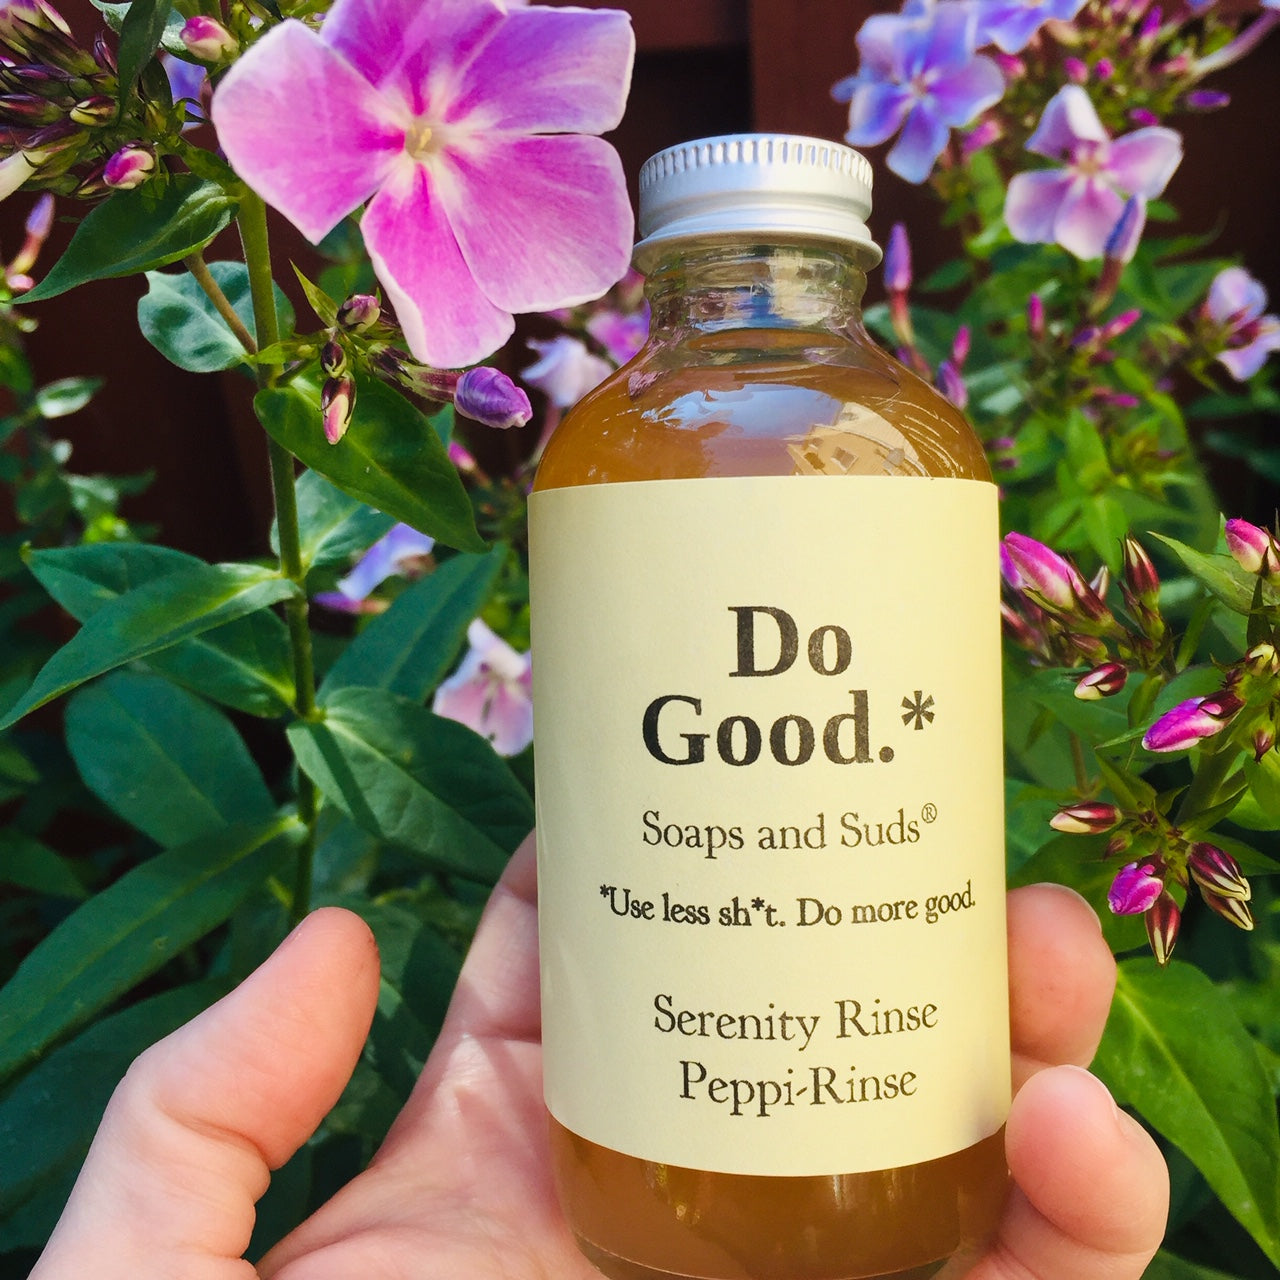 Serenity Hair Rinse - Do Good Soaps and Suds - Lavender-infused organic apple cider vinegar